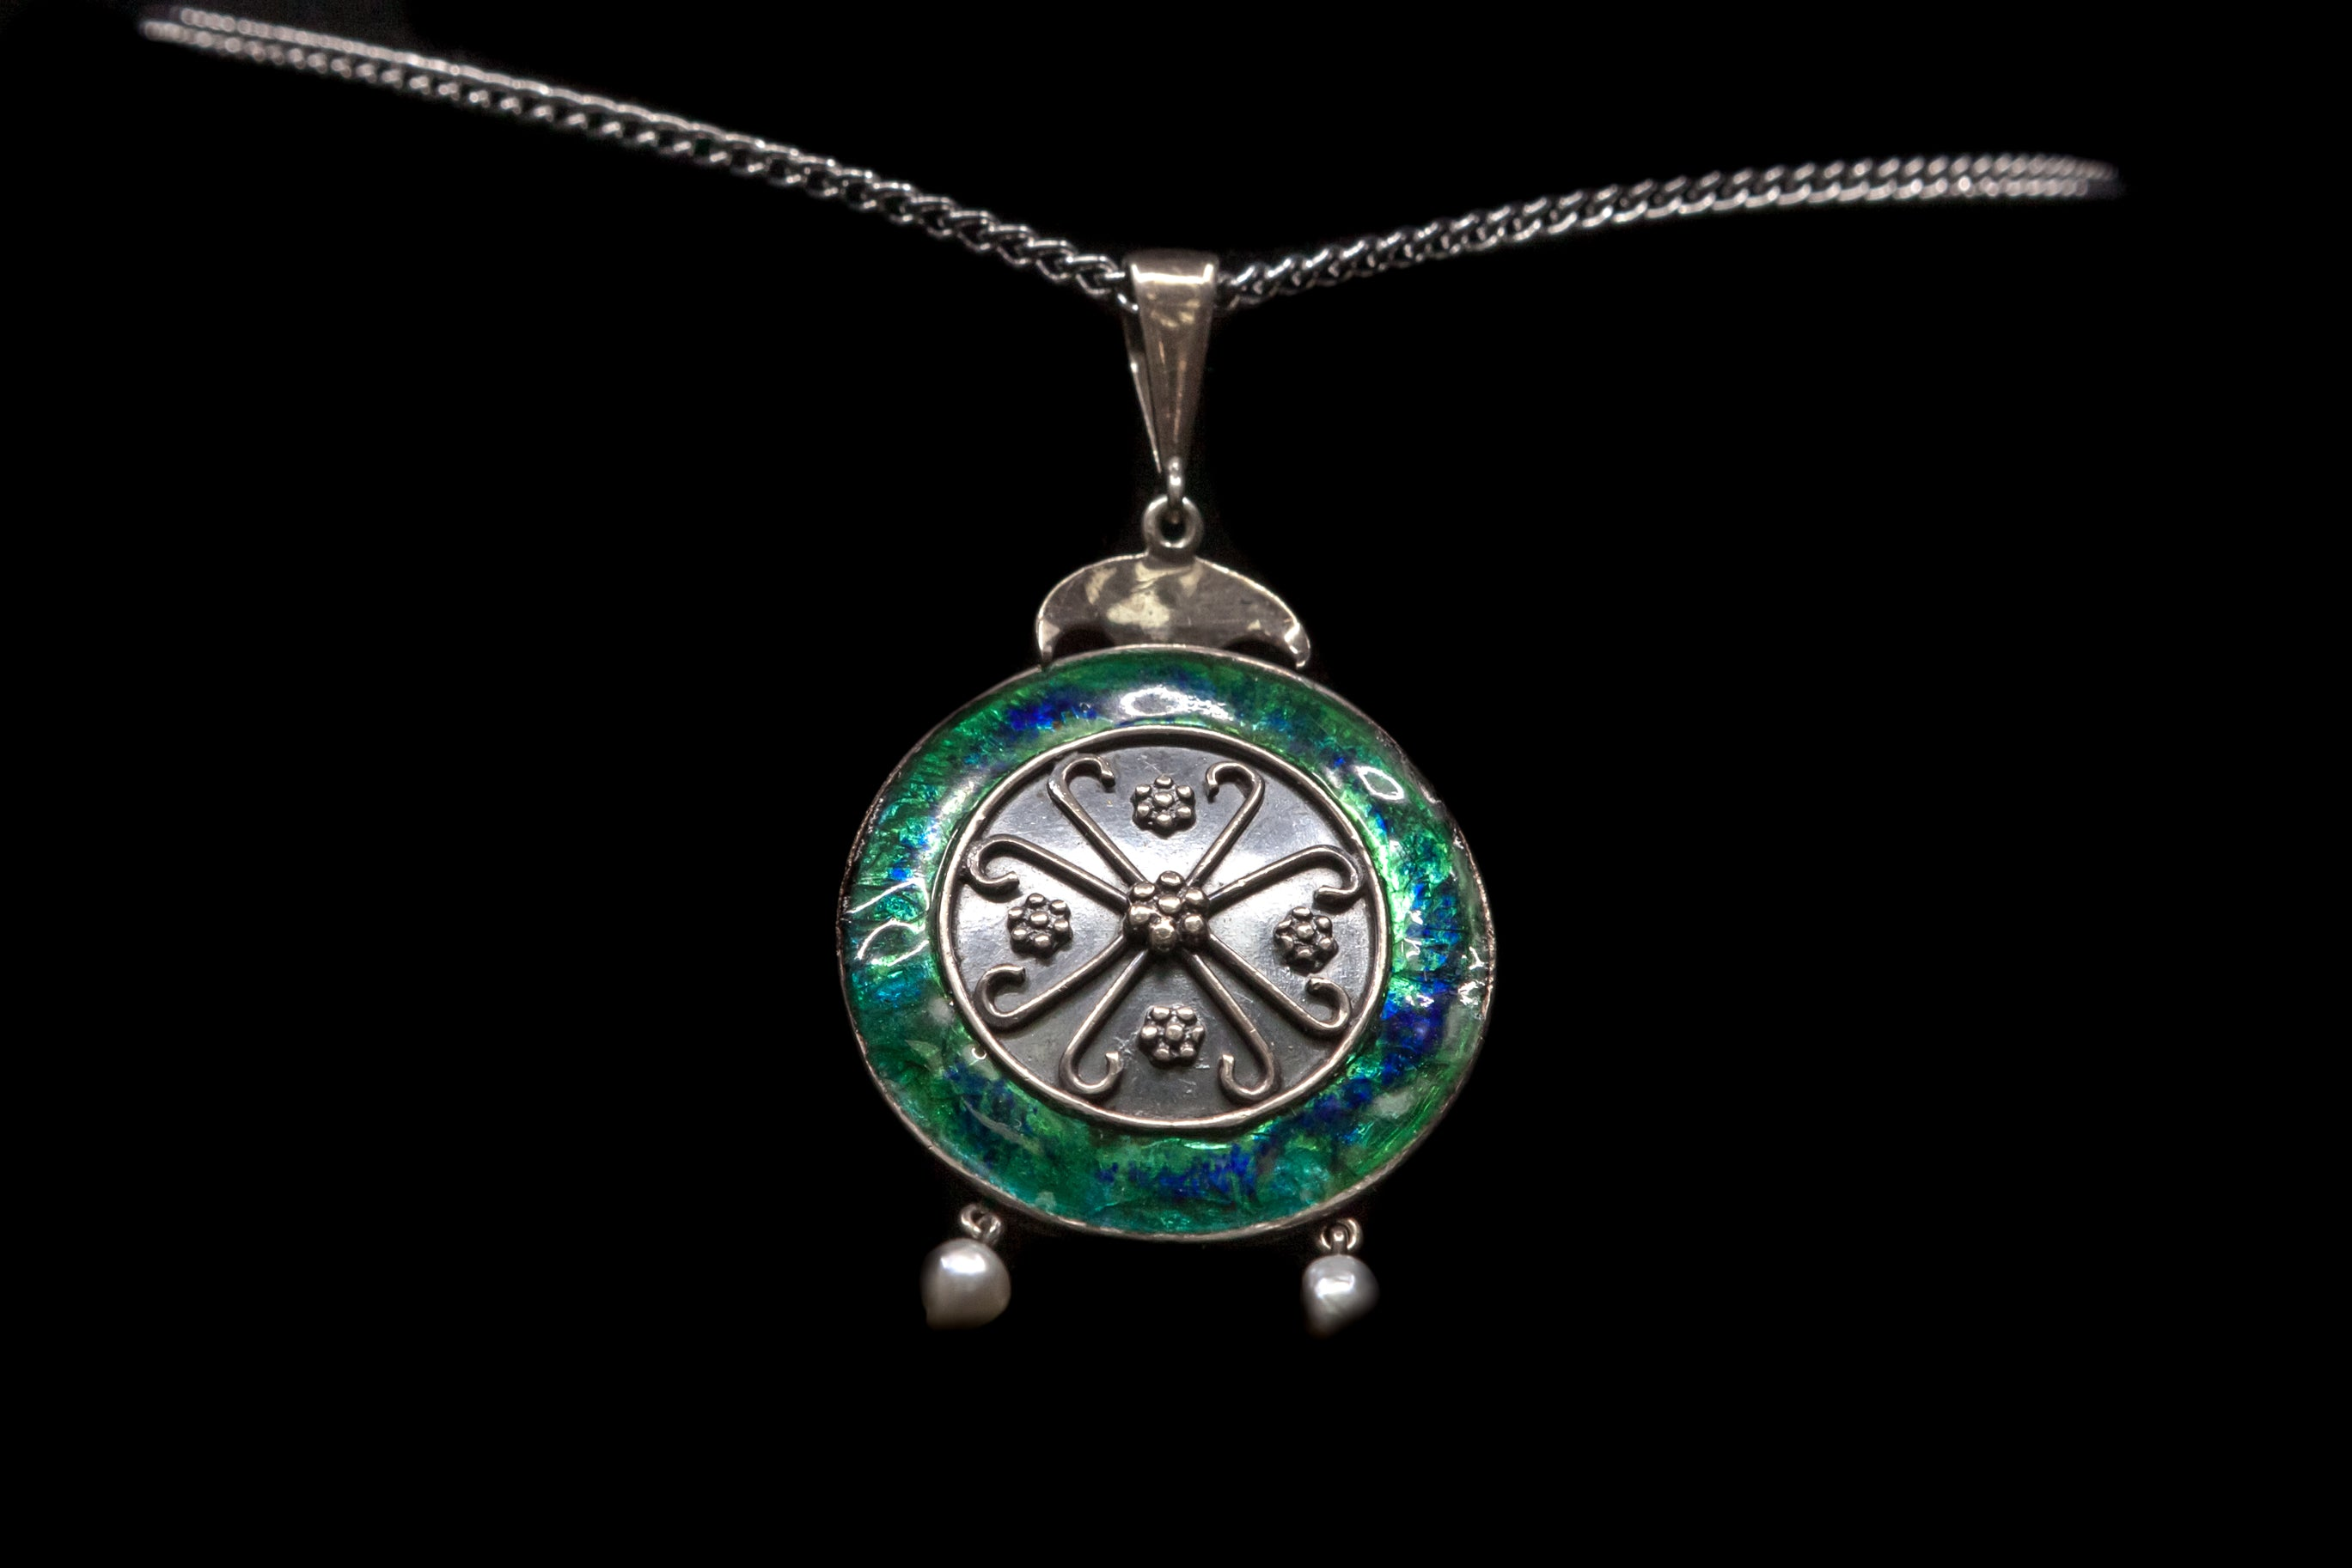 C1920 Sterling Silver and Enamel Pendant.